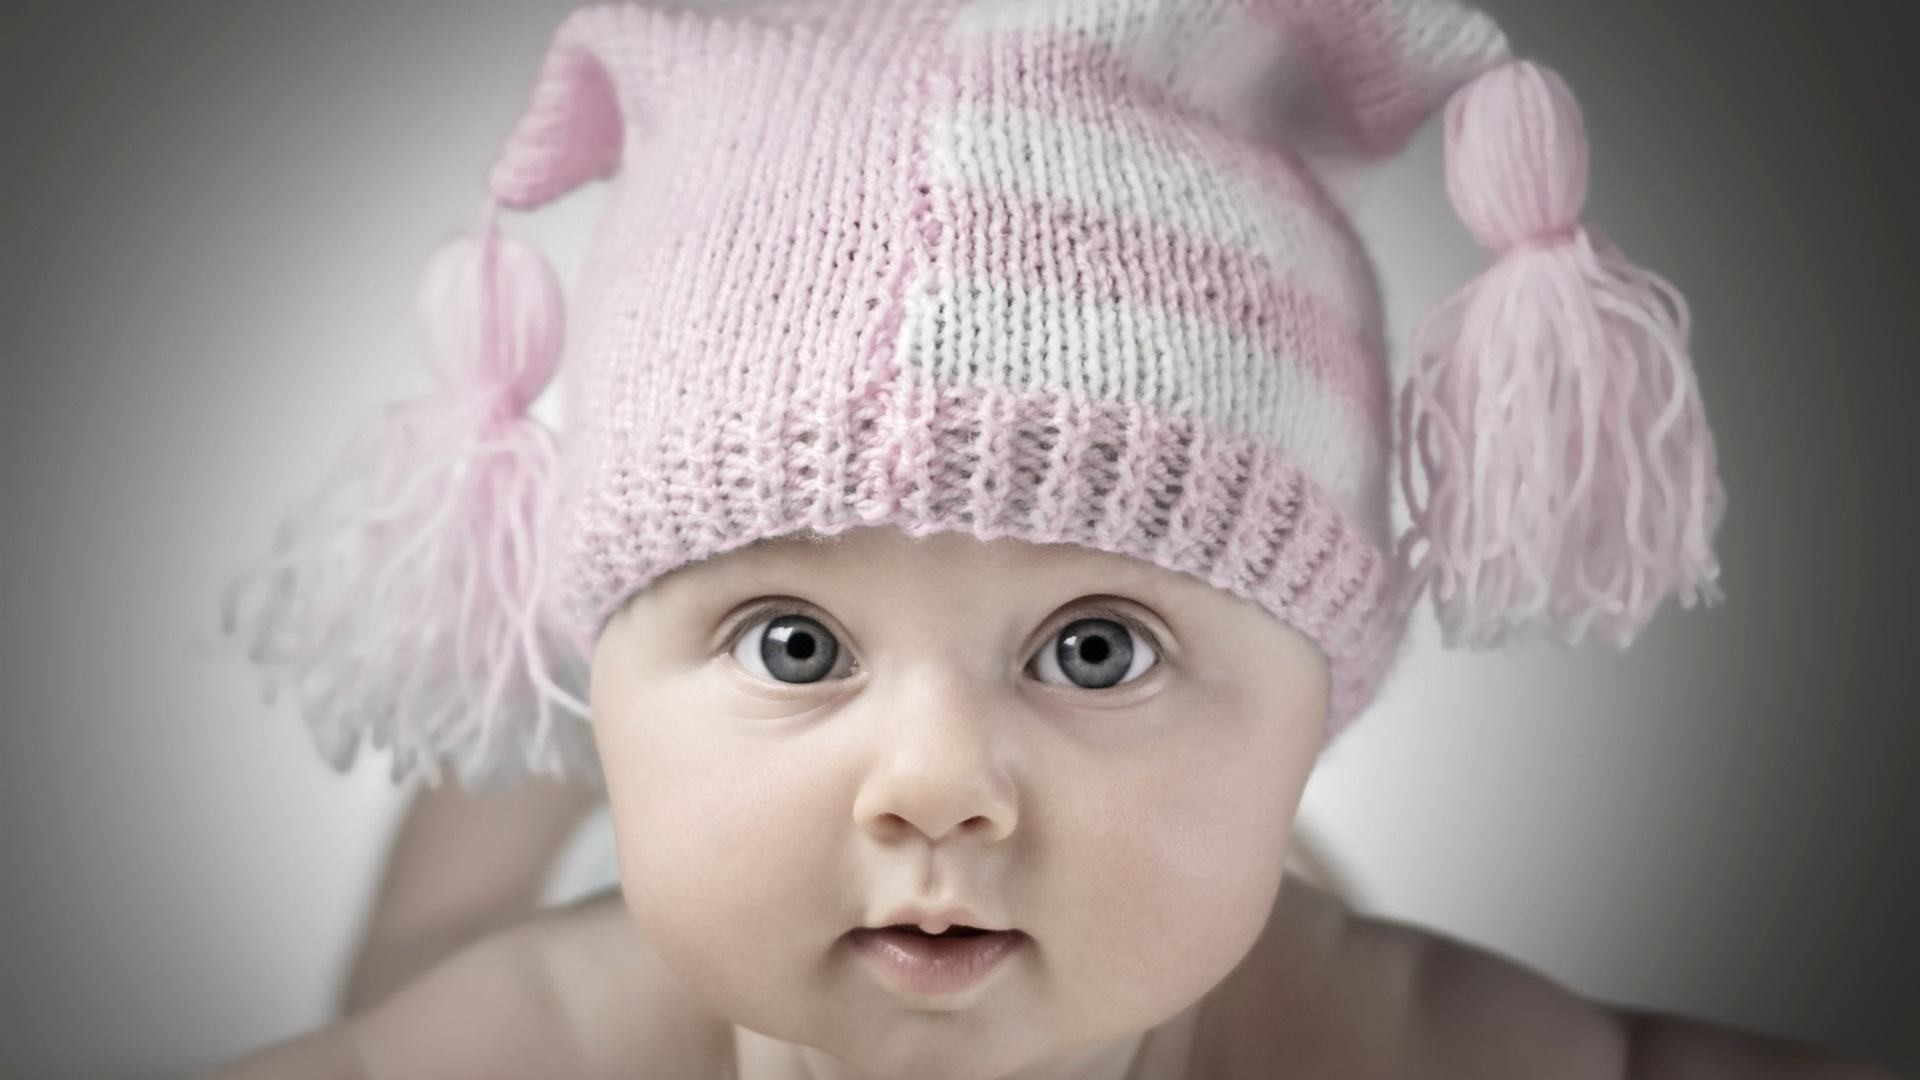 1920x1080 Cute Baby HD Wallpapers Free Download